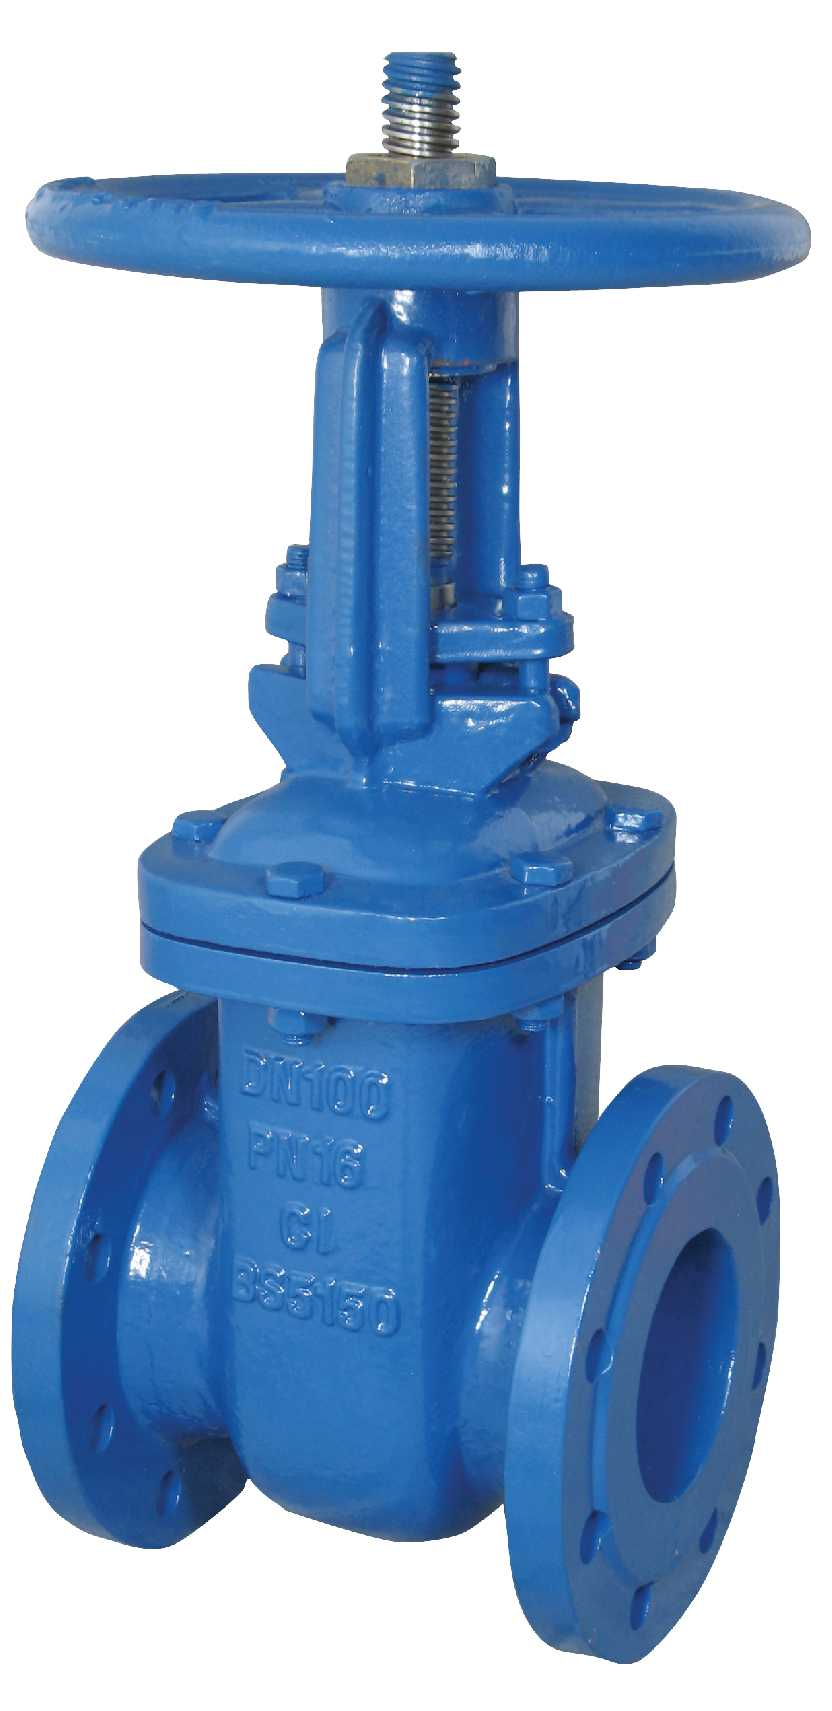 Iron body rising stem gate valve